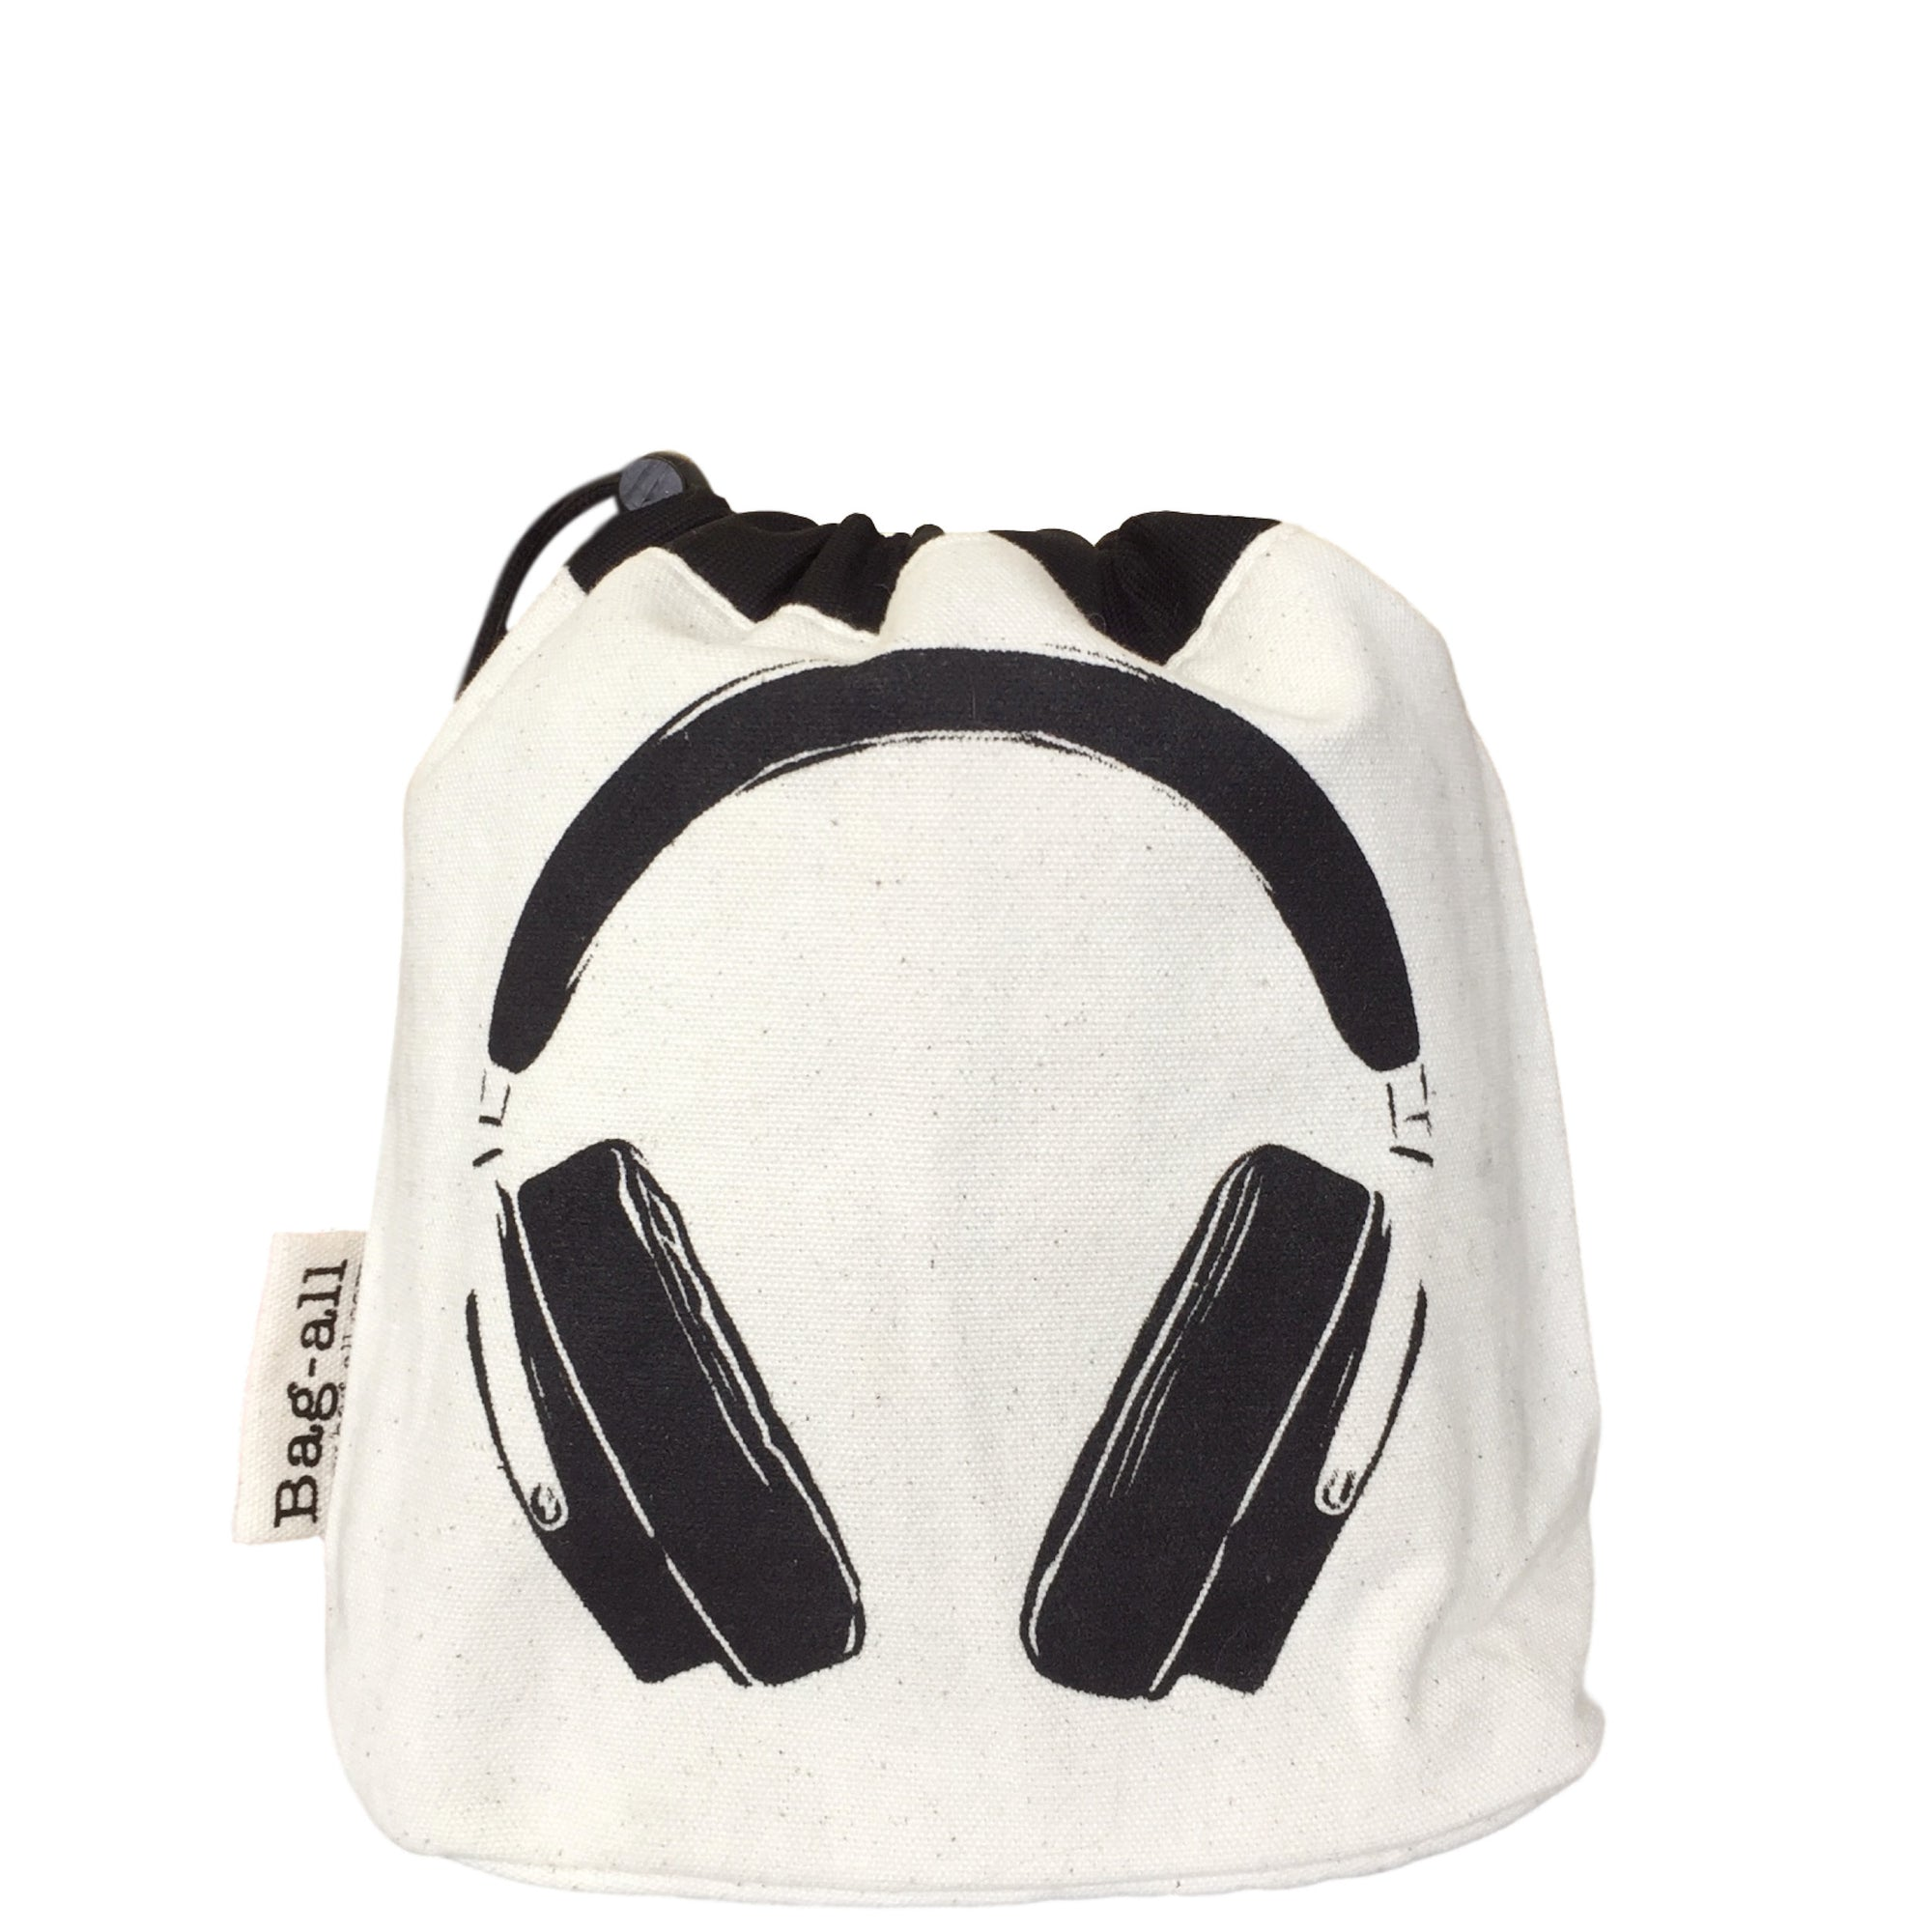 Headphone case with a drawstring pull to close with headphones printed on the front.